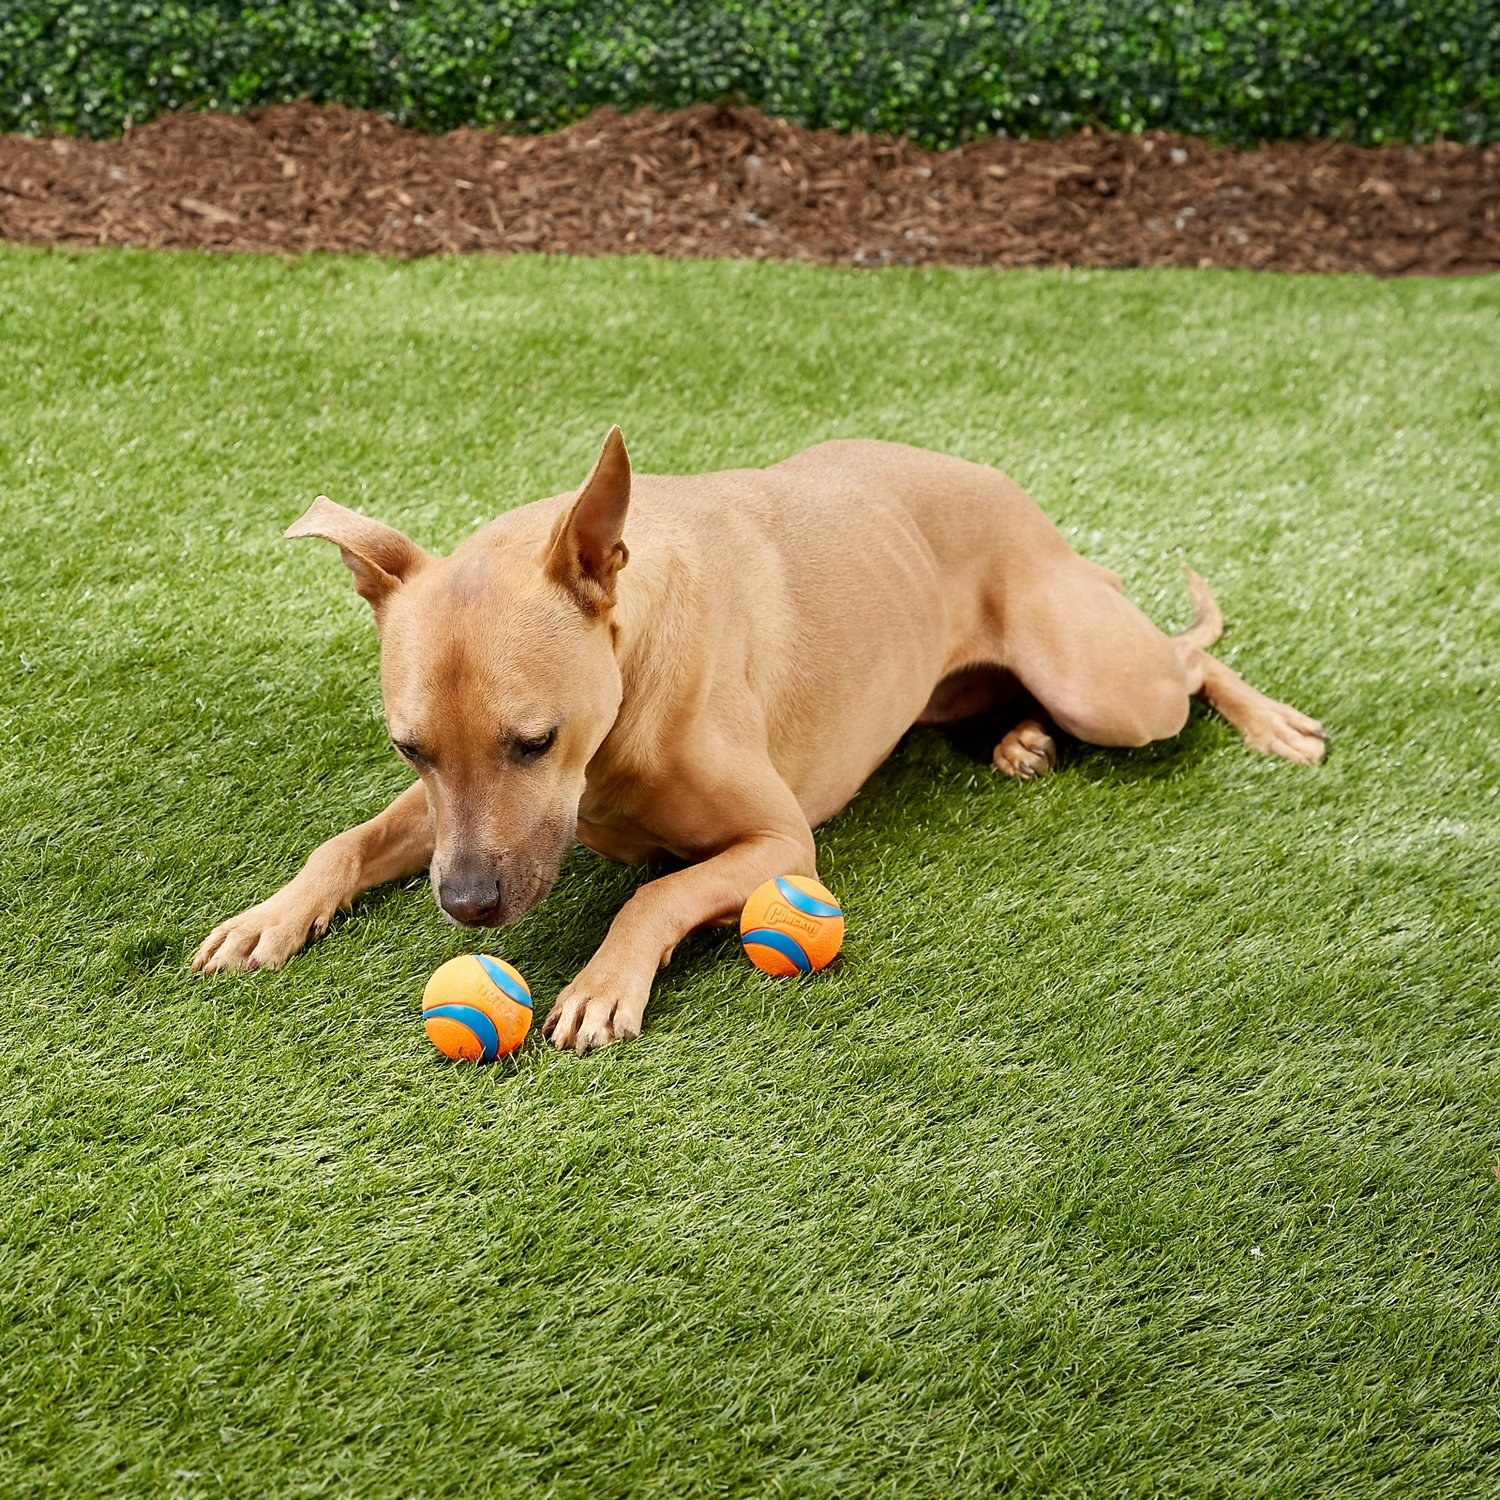 a dog playing with the two balls